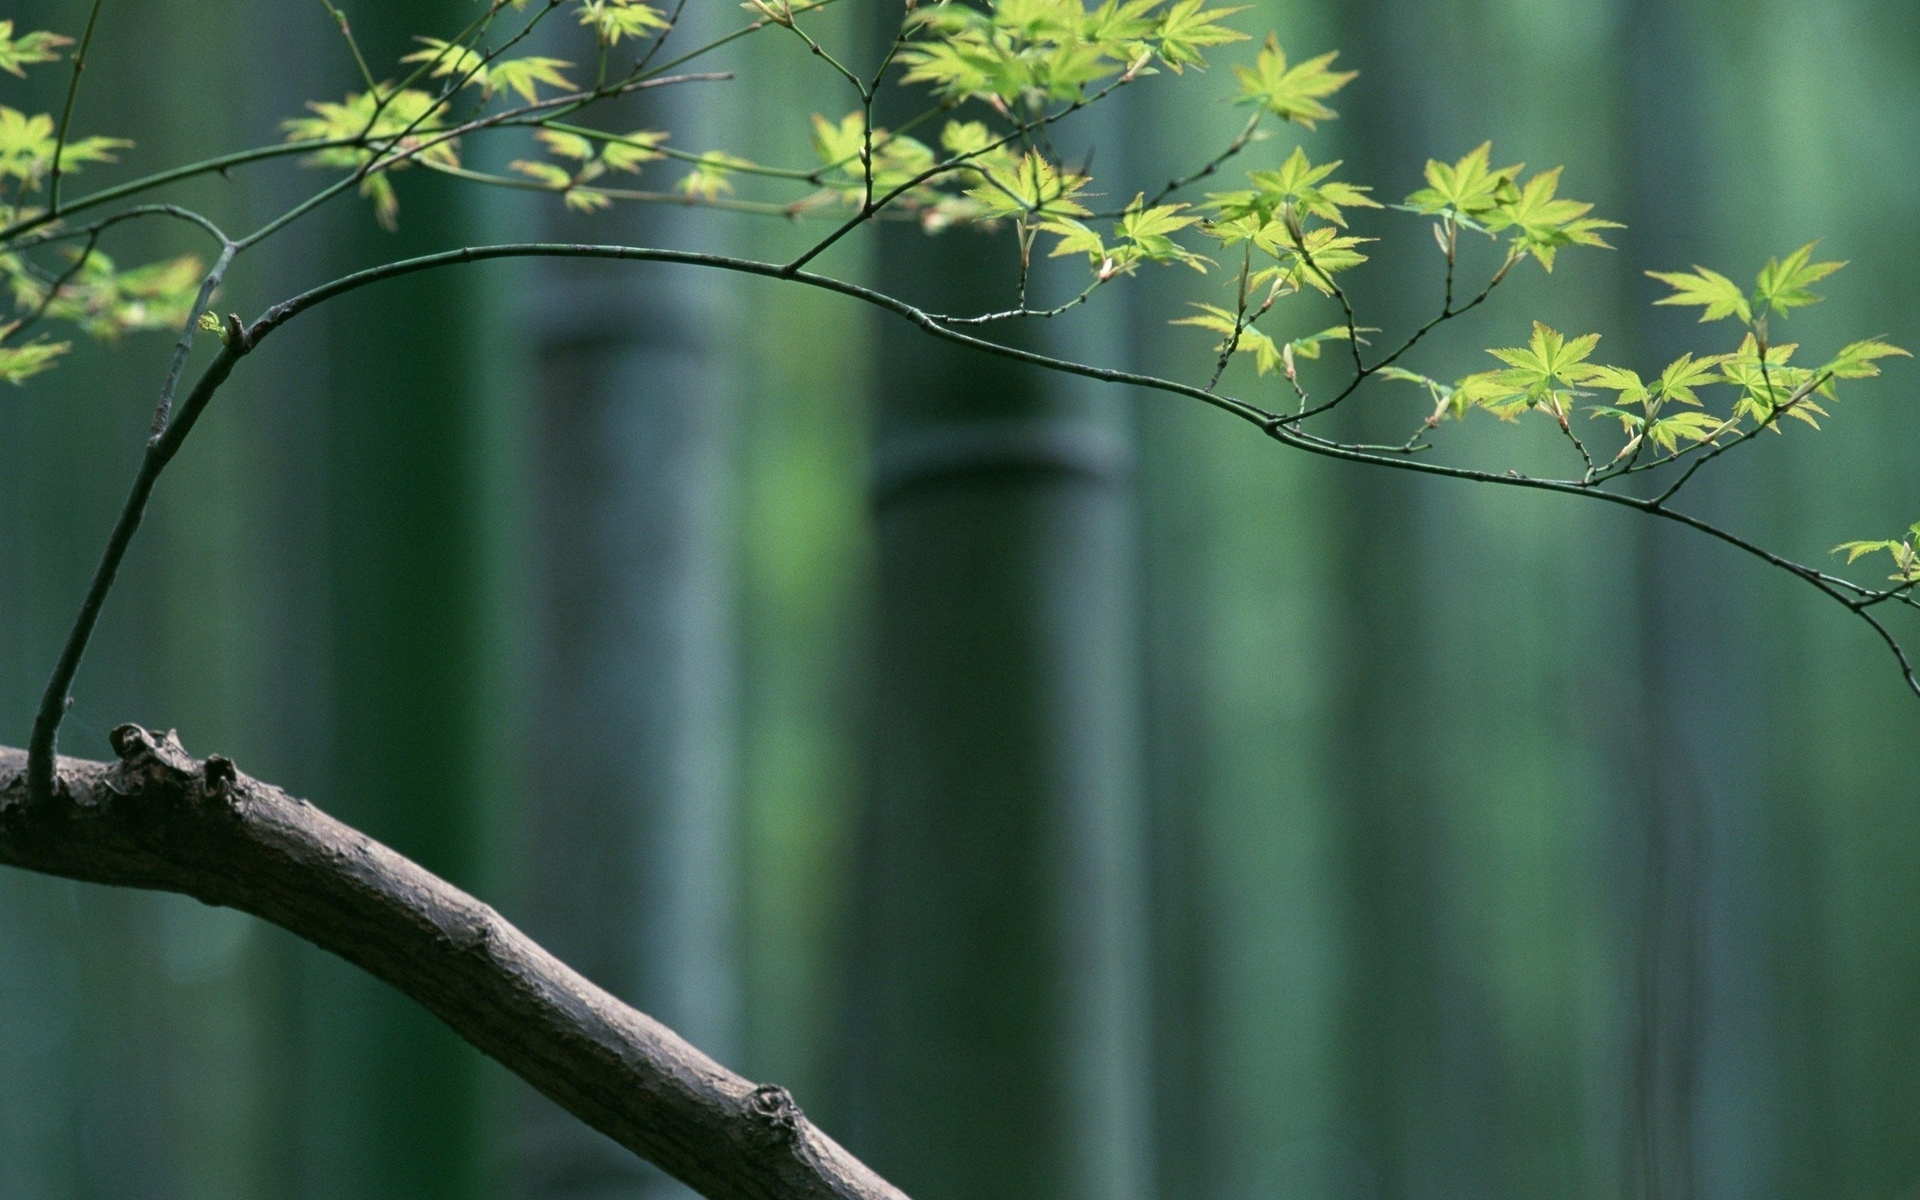 Hd Earth Wallpaper Widescreen Bamboo Full Hd Wallpaper And Background Image 1920x1200